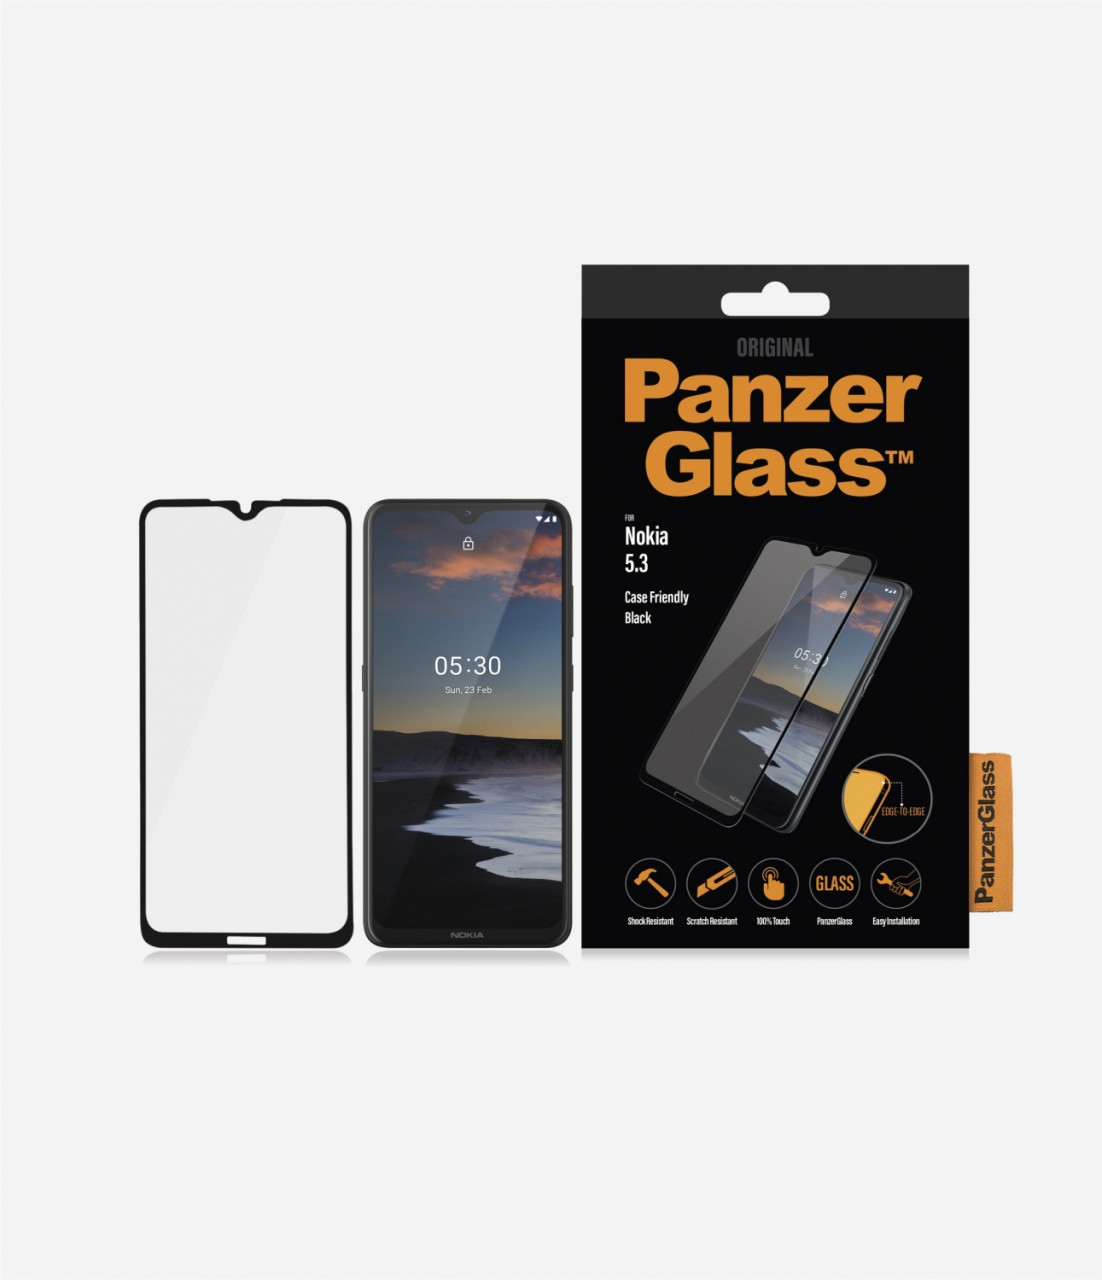 PanzerGlass Case Friendly Displayschutzfolie kompatibel mit Nokia 5.3